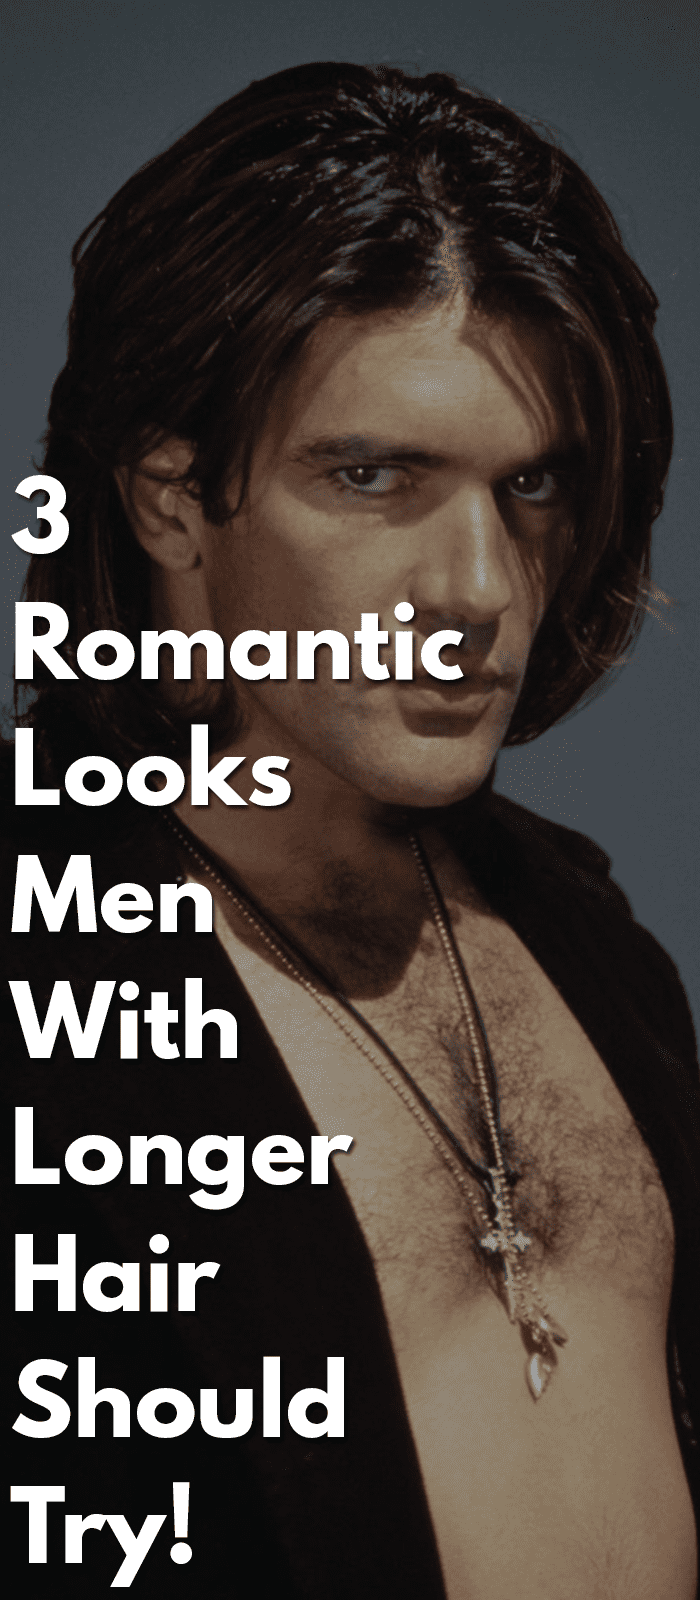 3-Romantic-Looks-Men-With-Longer-Hair-Should-Try!